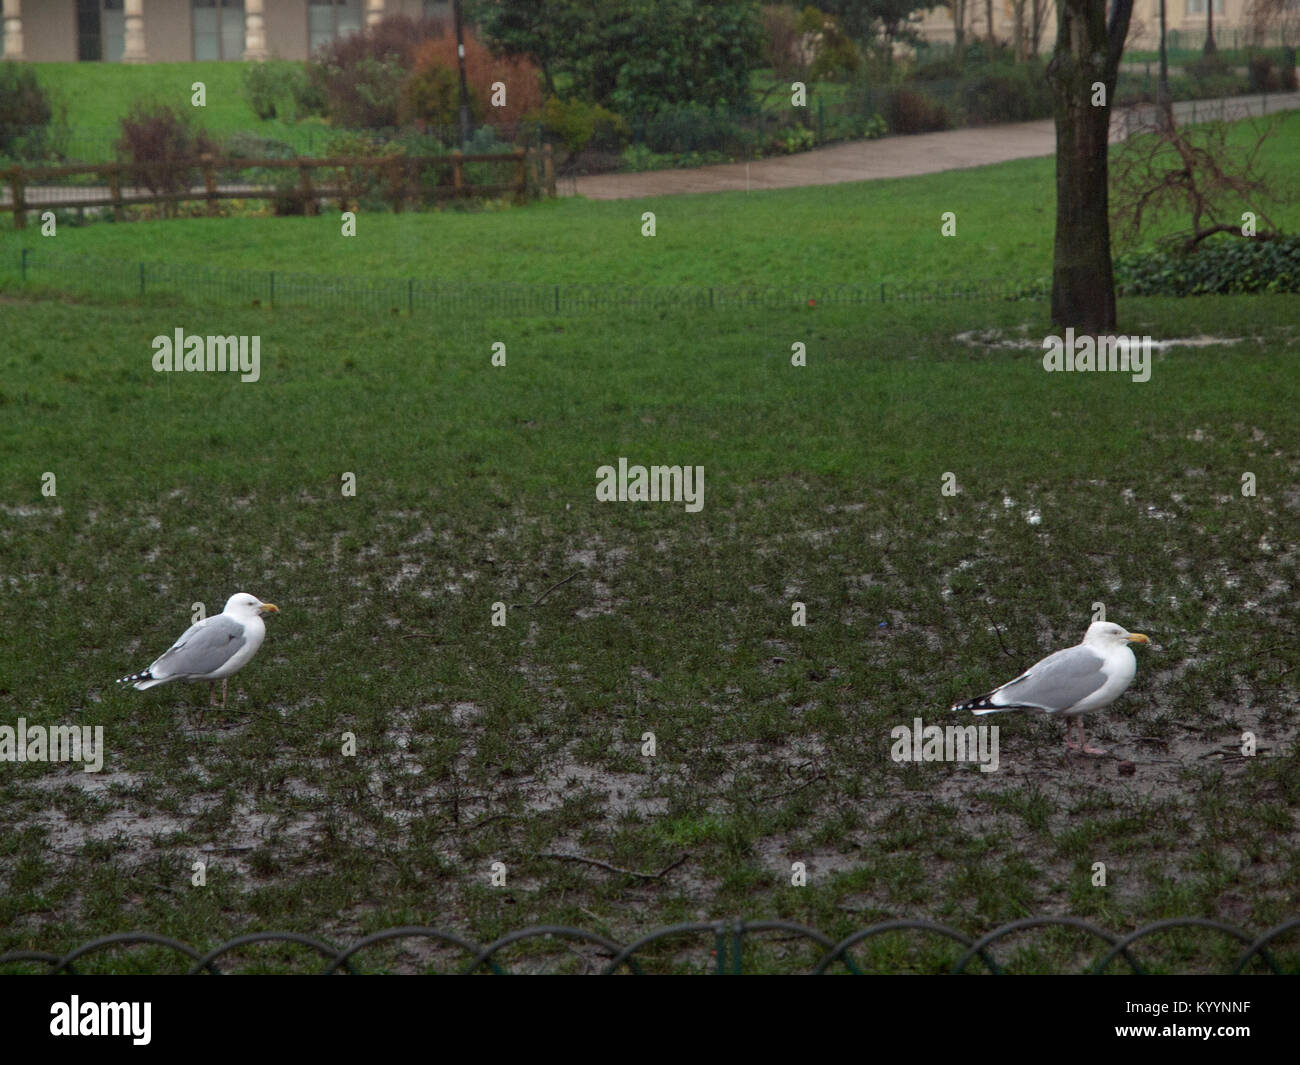 A wet winter's day for two seagulls in Pavilion Gardens, Brighton - Stock Image